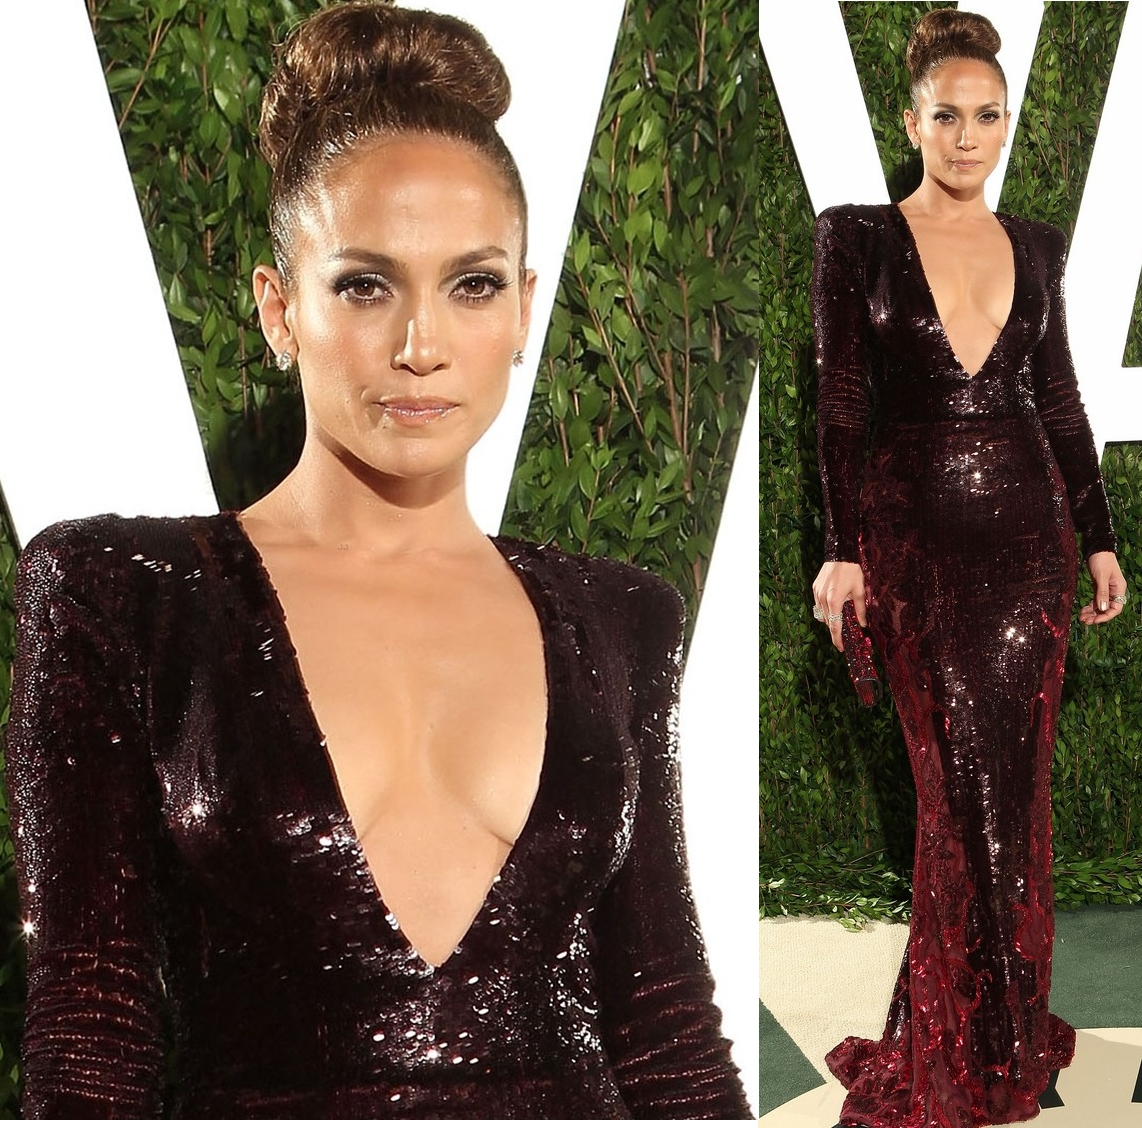 http://4.bp.blogspot.com/-GtI4PB9zlJQ/T0t2ilW03mI/AAAAAAAAEdY/leJ3qjyUp8M/s1600/jennifer-lopez-vanity-fair-after-party-03.jpg